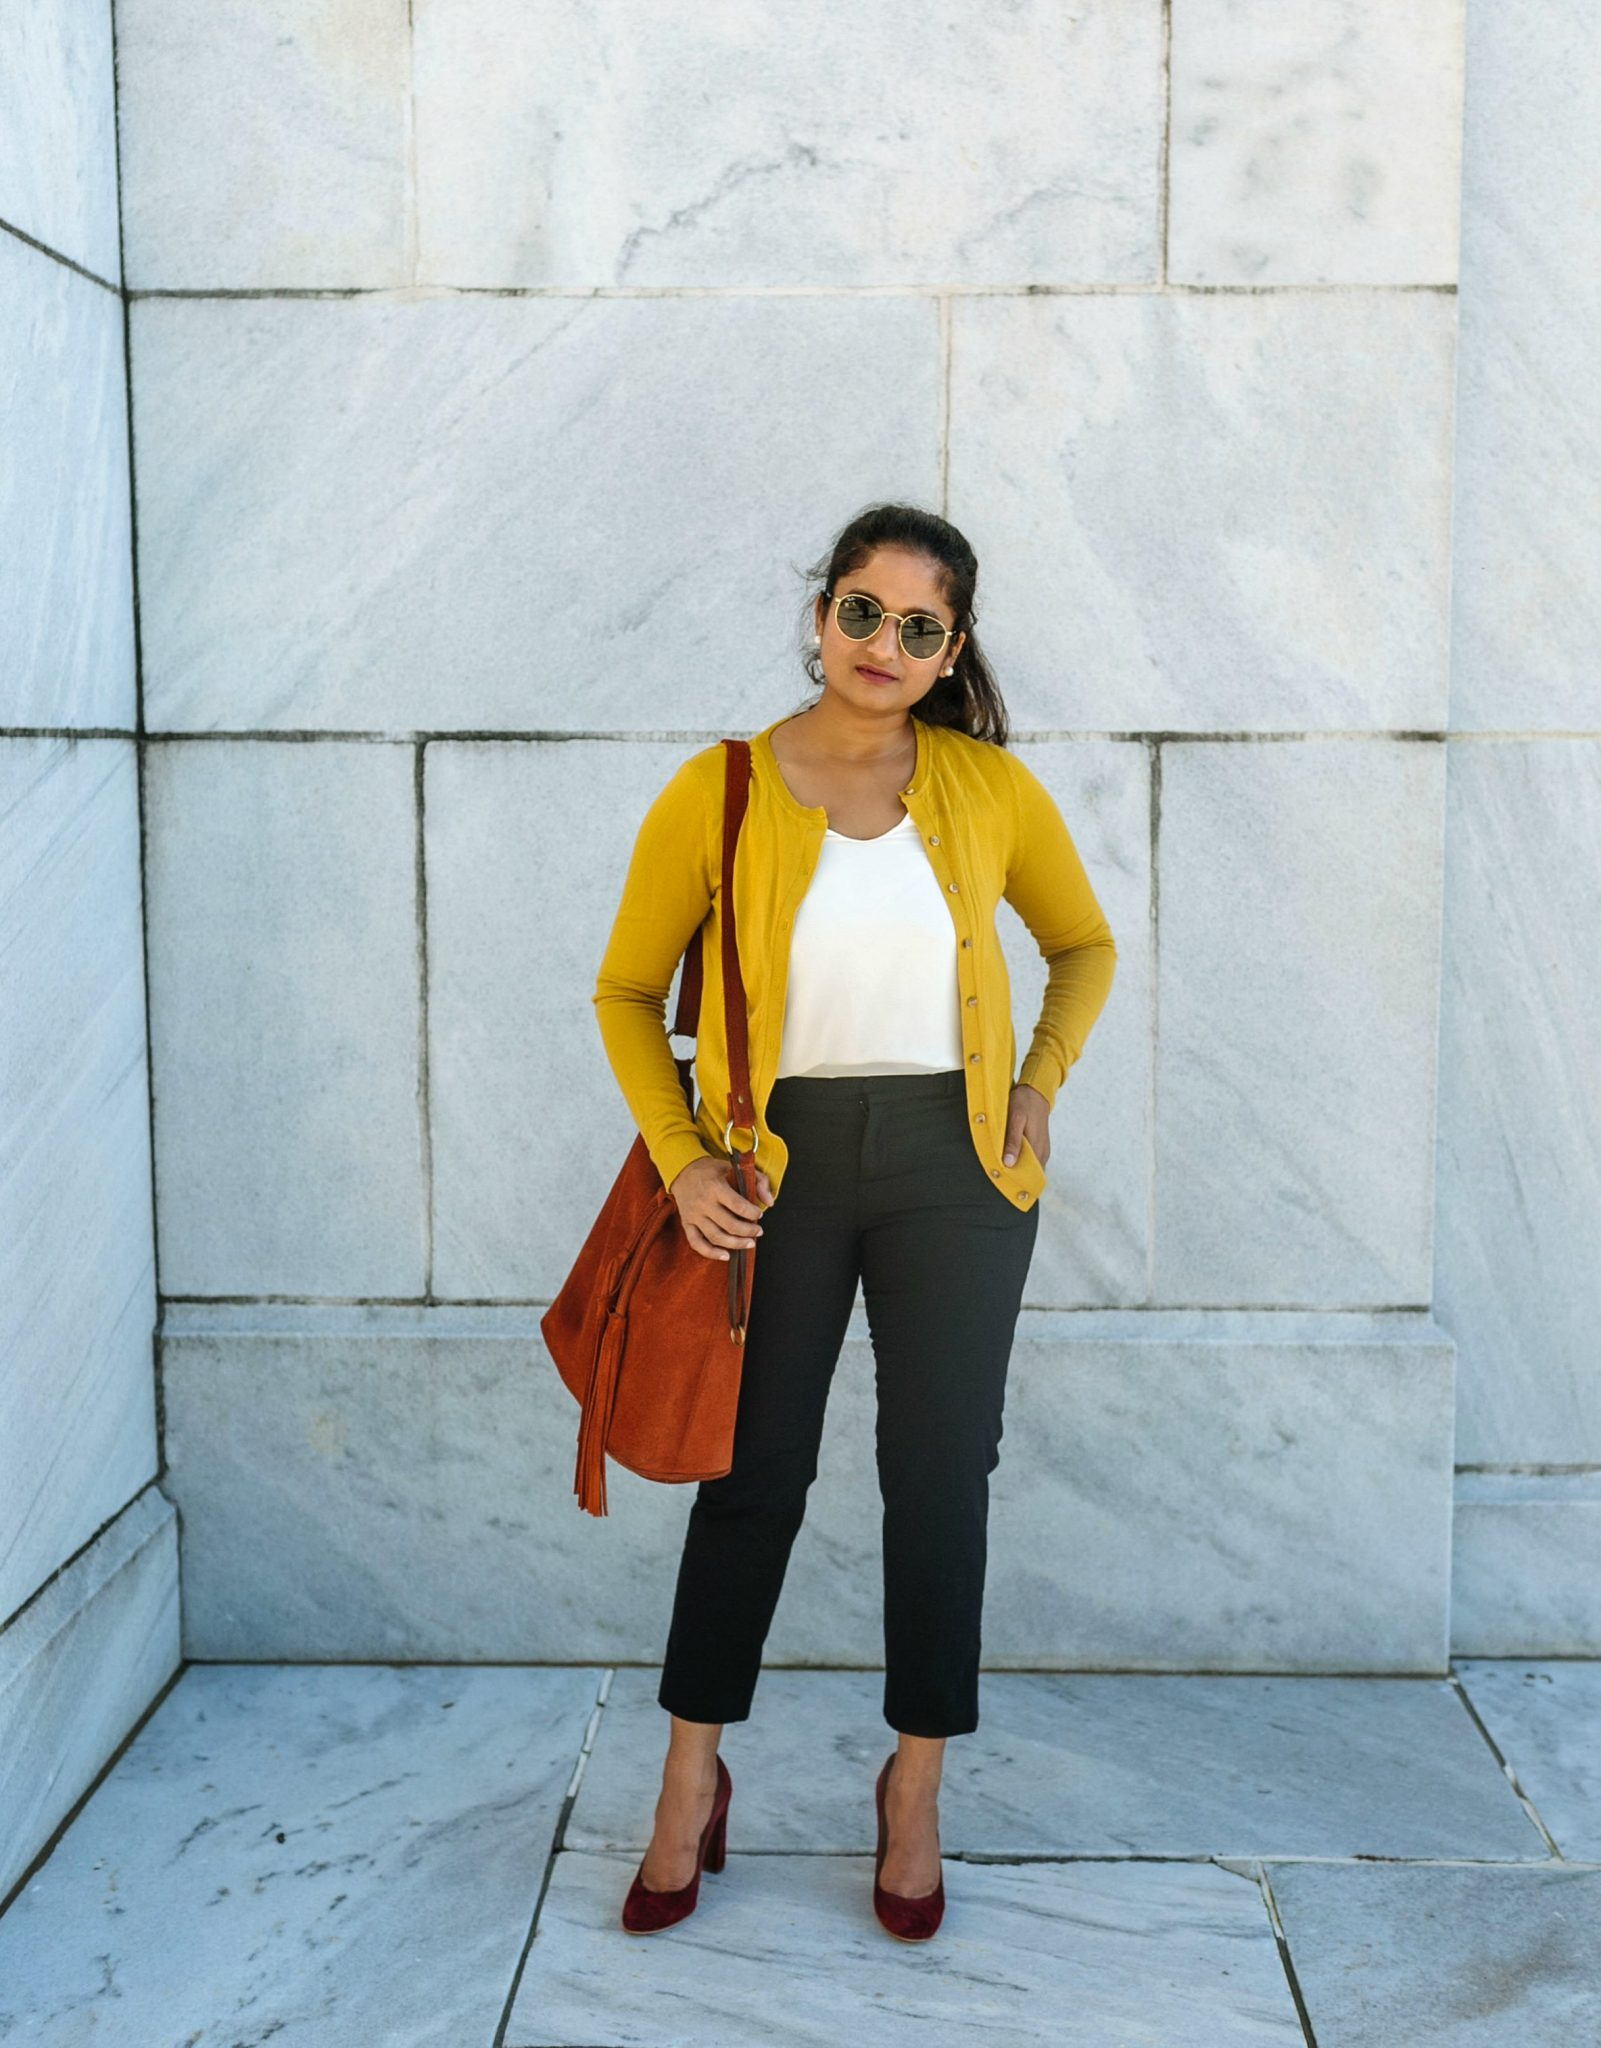 wearing Banana Republic Sloan Skinny-Fit Solid Ankle Pant in black | Colorful Fall Work Outfits featured by popular US modest fashion blogger, Dreaming Loud